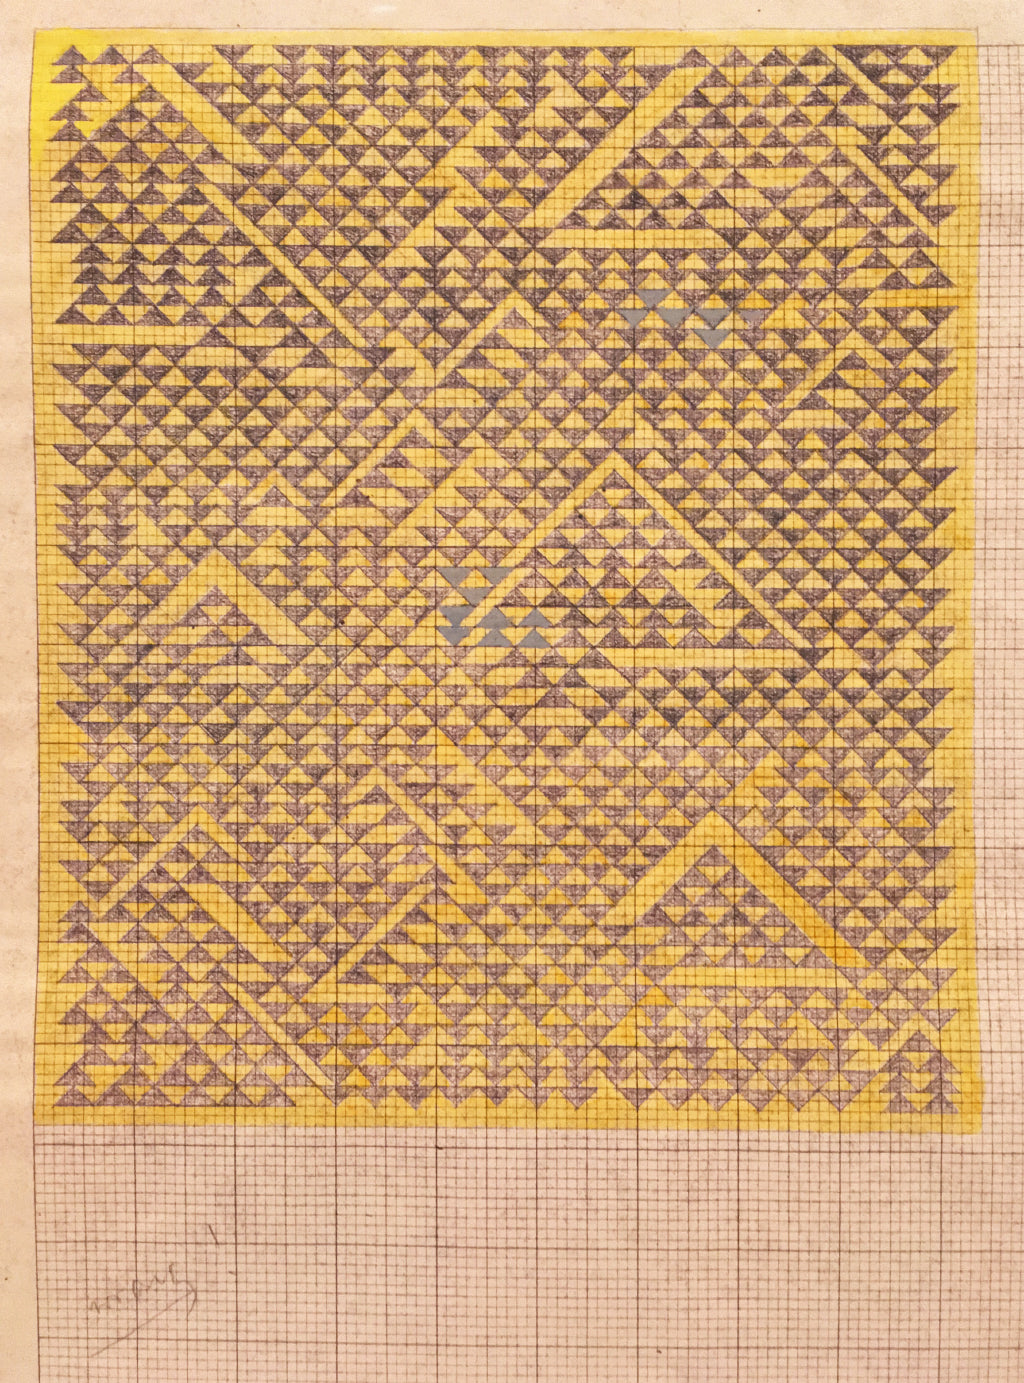 Anni Albers Design Sketch at Tate London